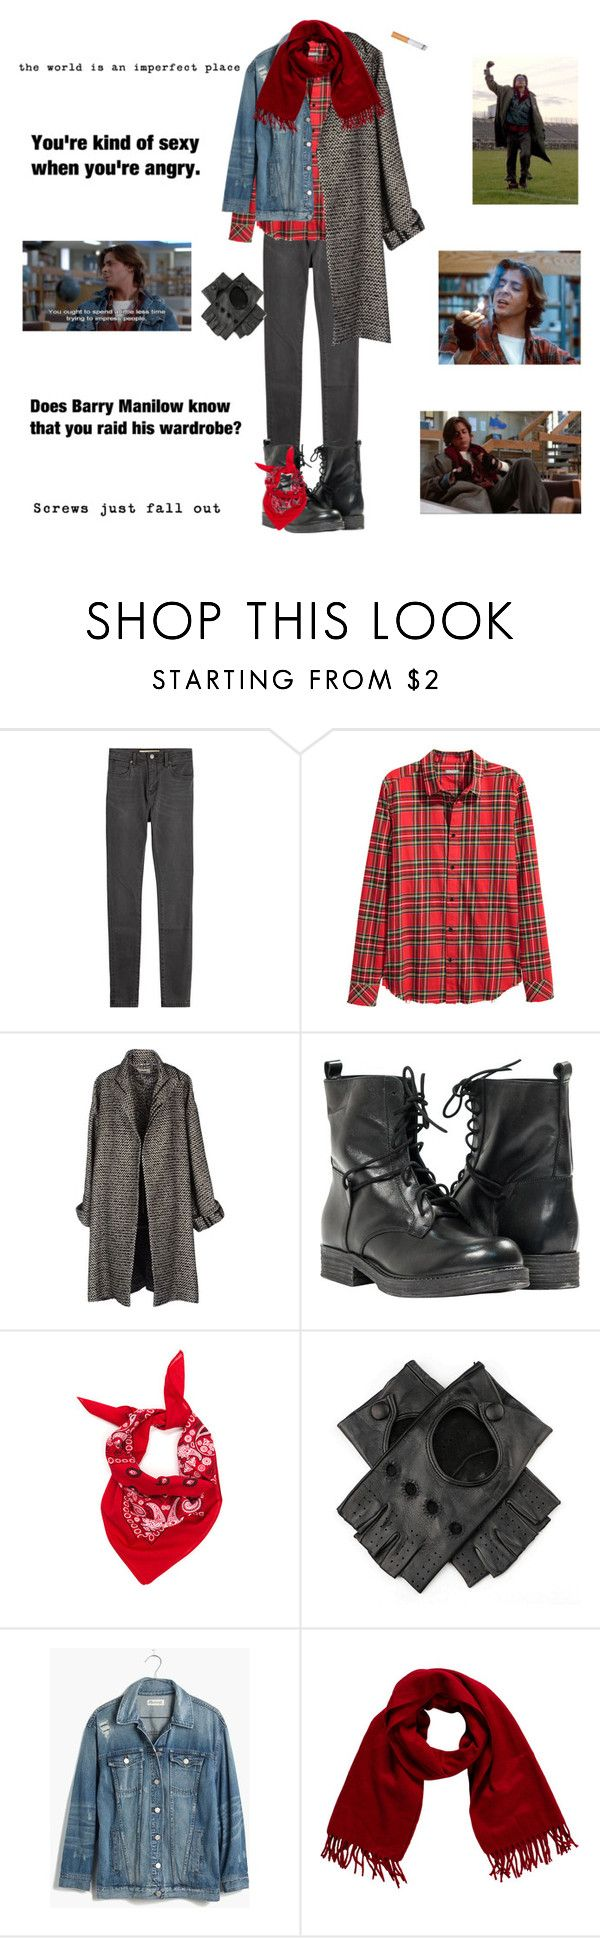 """""""John Bender: My Halloween Costume"""" by adriannamartin70 ❤ liked on Polyvore featuring Burberry, Jean-Paul Gaultier, Paolo Shoes, Black, Madewell, Loro Piana, men's fashion and menswear"""